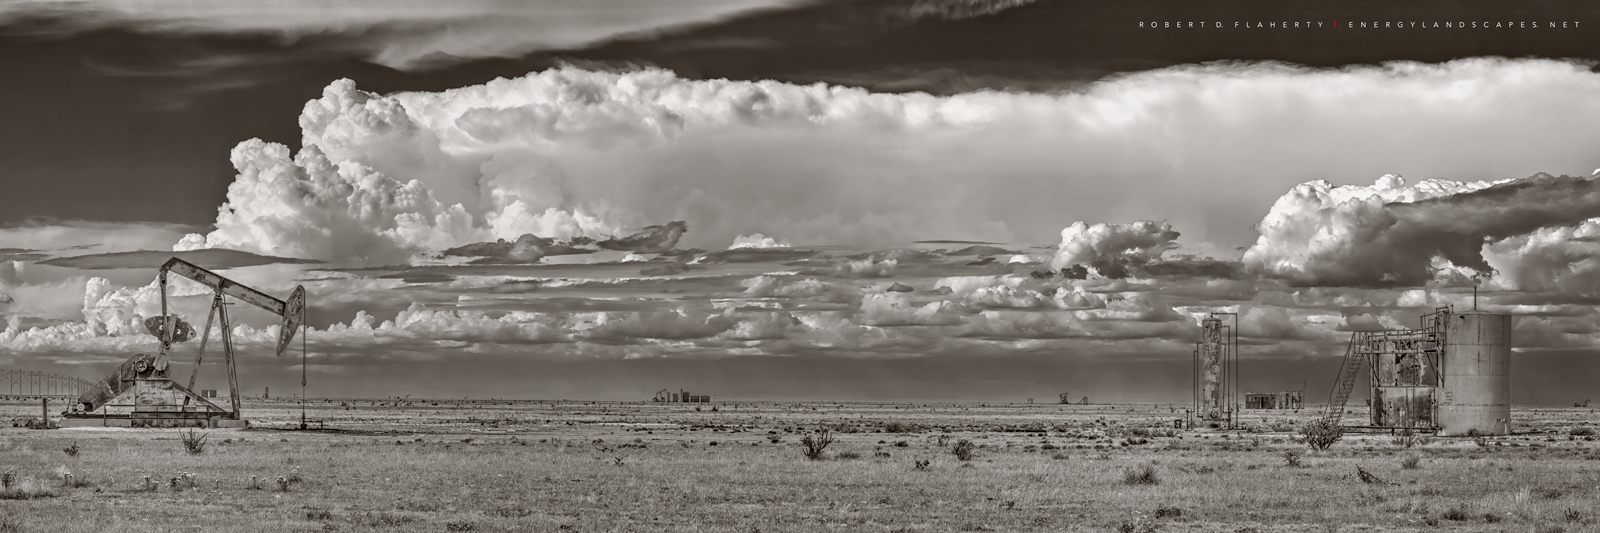 Summer Sky Panorama In Sepia, Pumpjack,  pump jack, Chavez County New Mexico, New Mexico, oil production, gas production, grassland, monsoon, drought, thunderstorm, 2014, Eastern New Mexico, oilfield,, photo